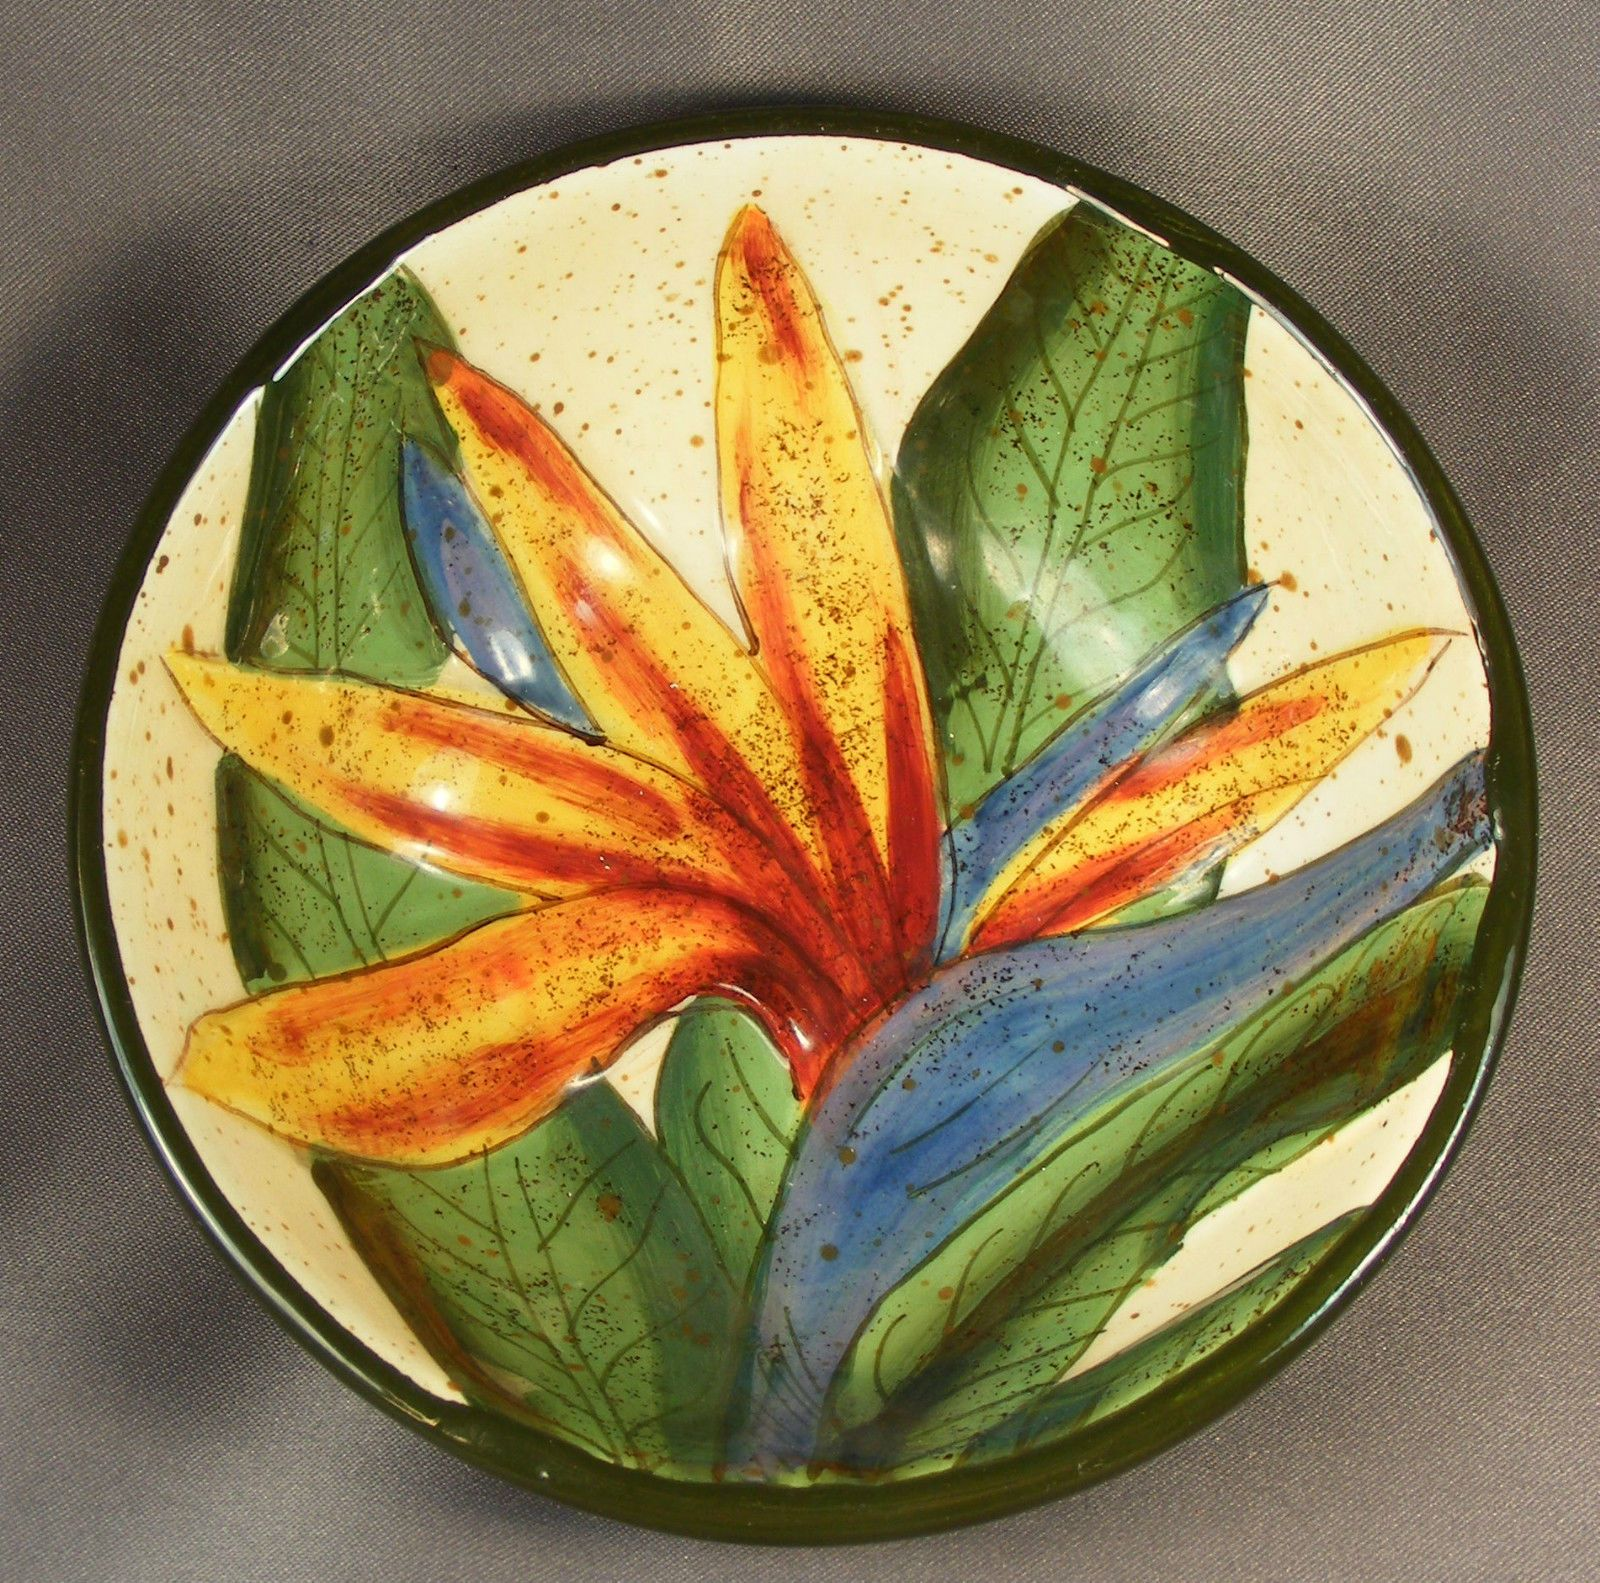 Hard to Find Small Hawaiian Island Plantations Bird of Paradise Flower Bowl | eBay & Hard to Find Small Hawaiian Island Plantations Bird of Paradise ...